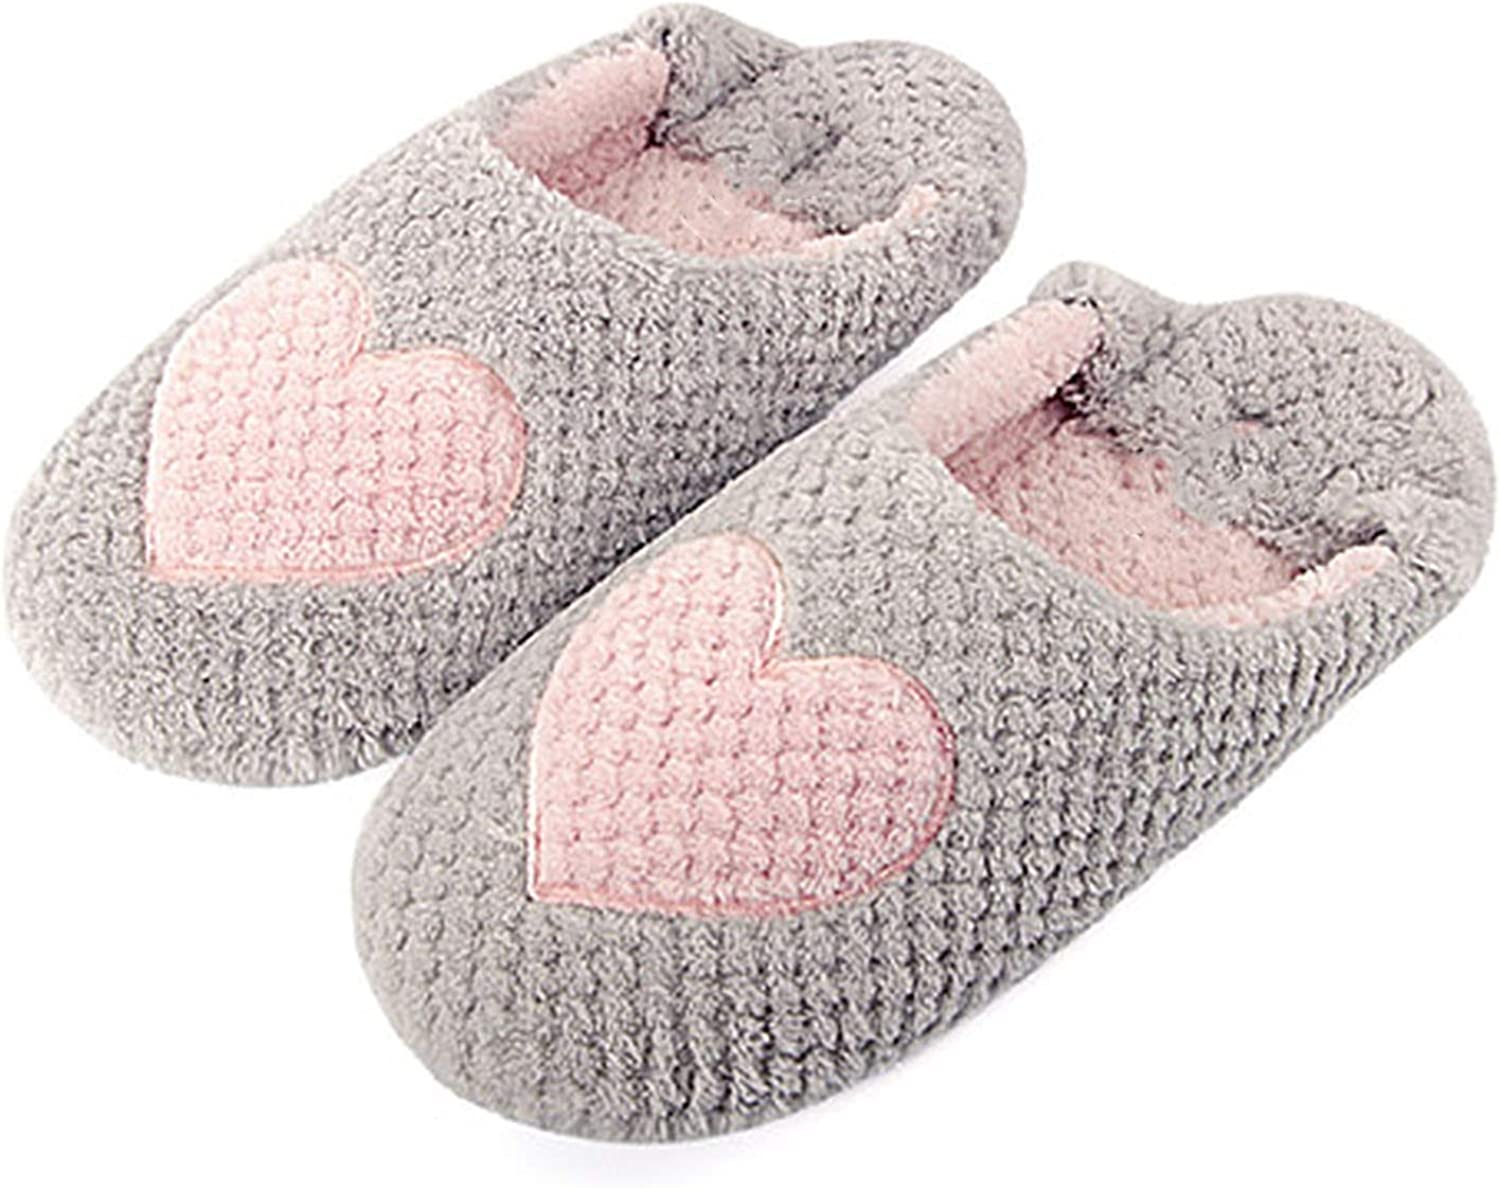 PilotageAuto Winter Home Slippers Woman Cotton Soft Plush Indoor Floor shoes Fur Slippers Warm Slippers